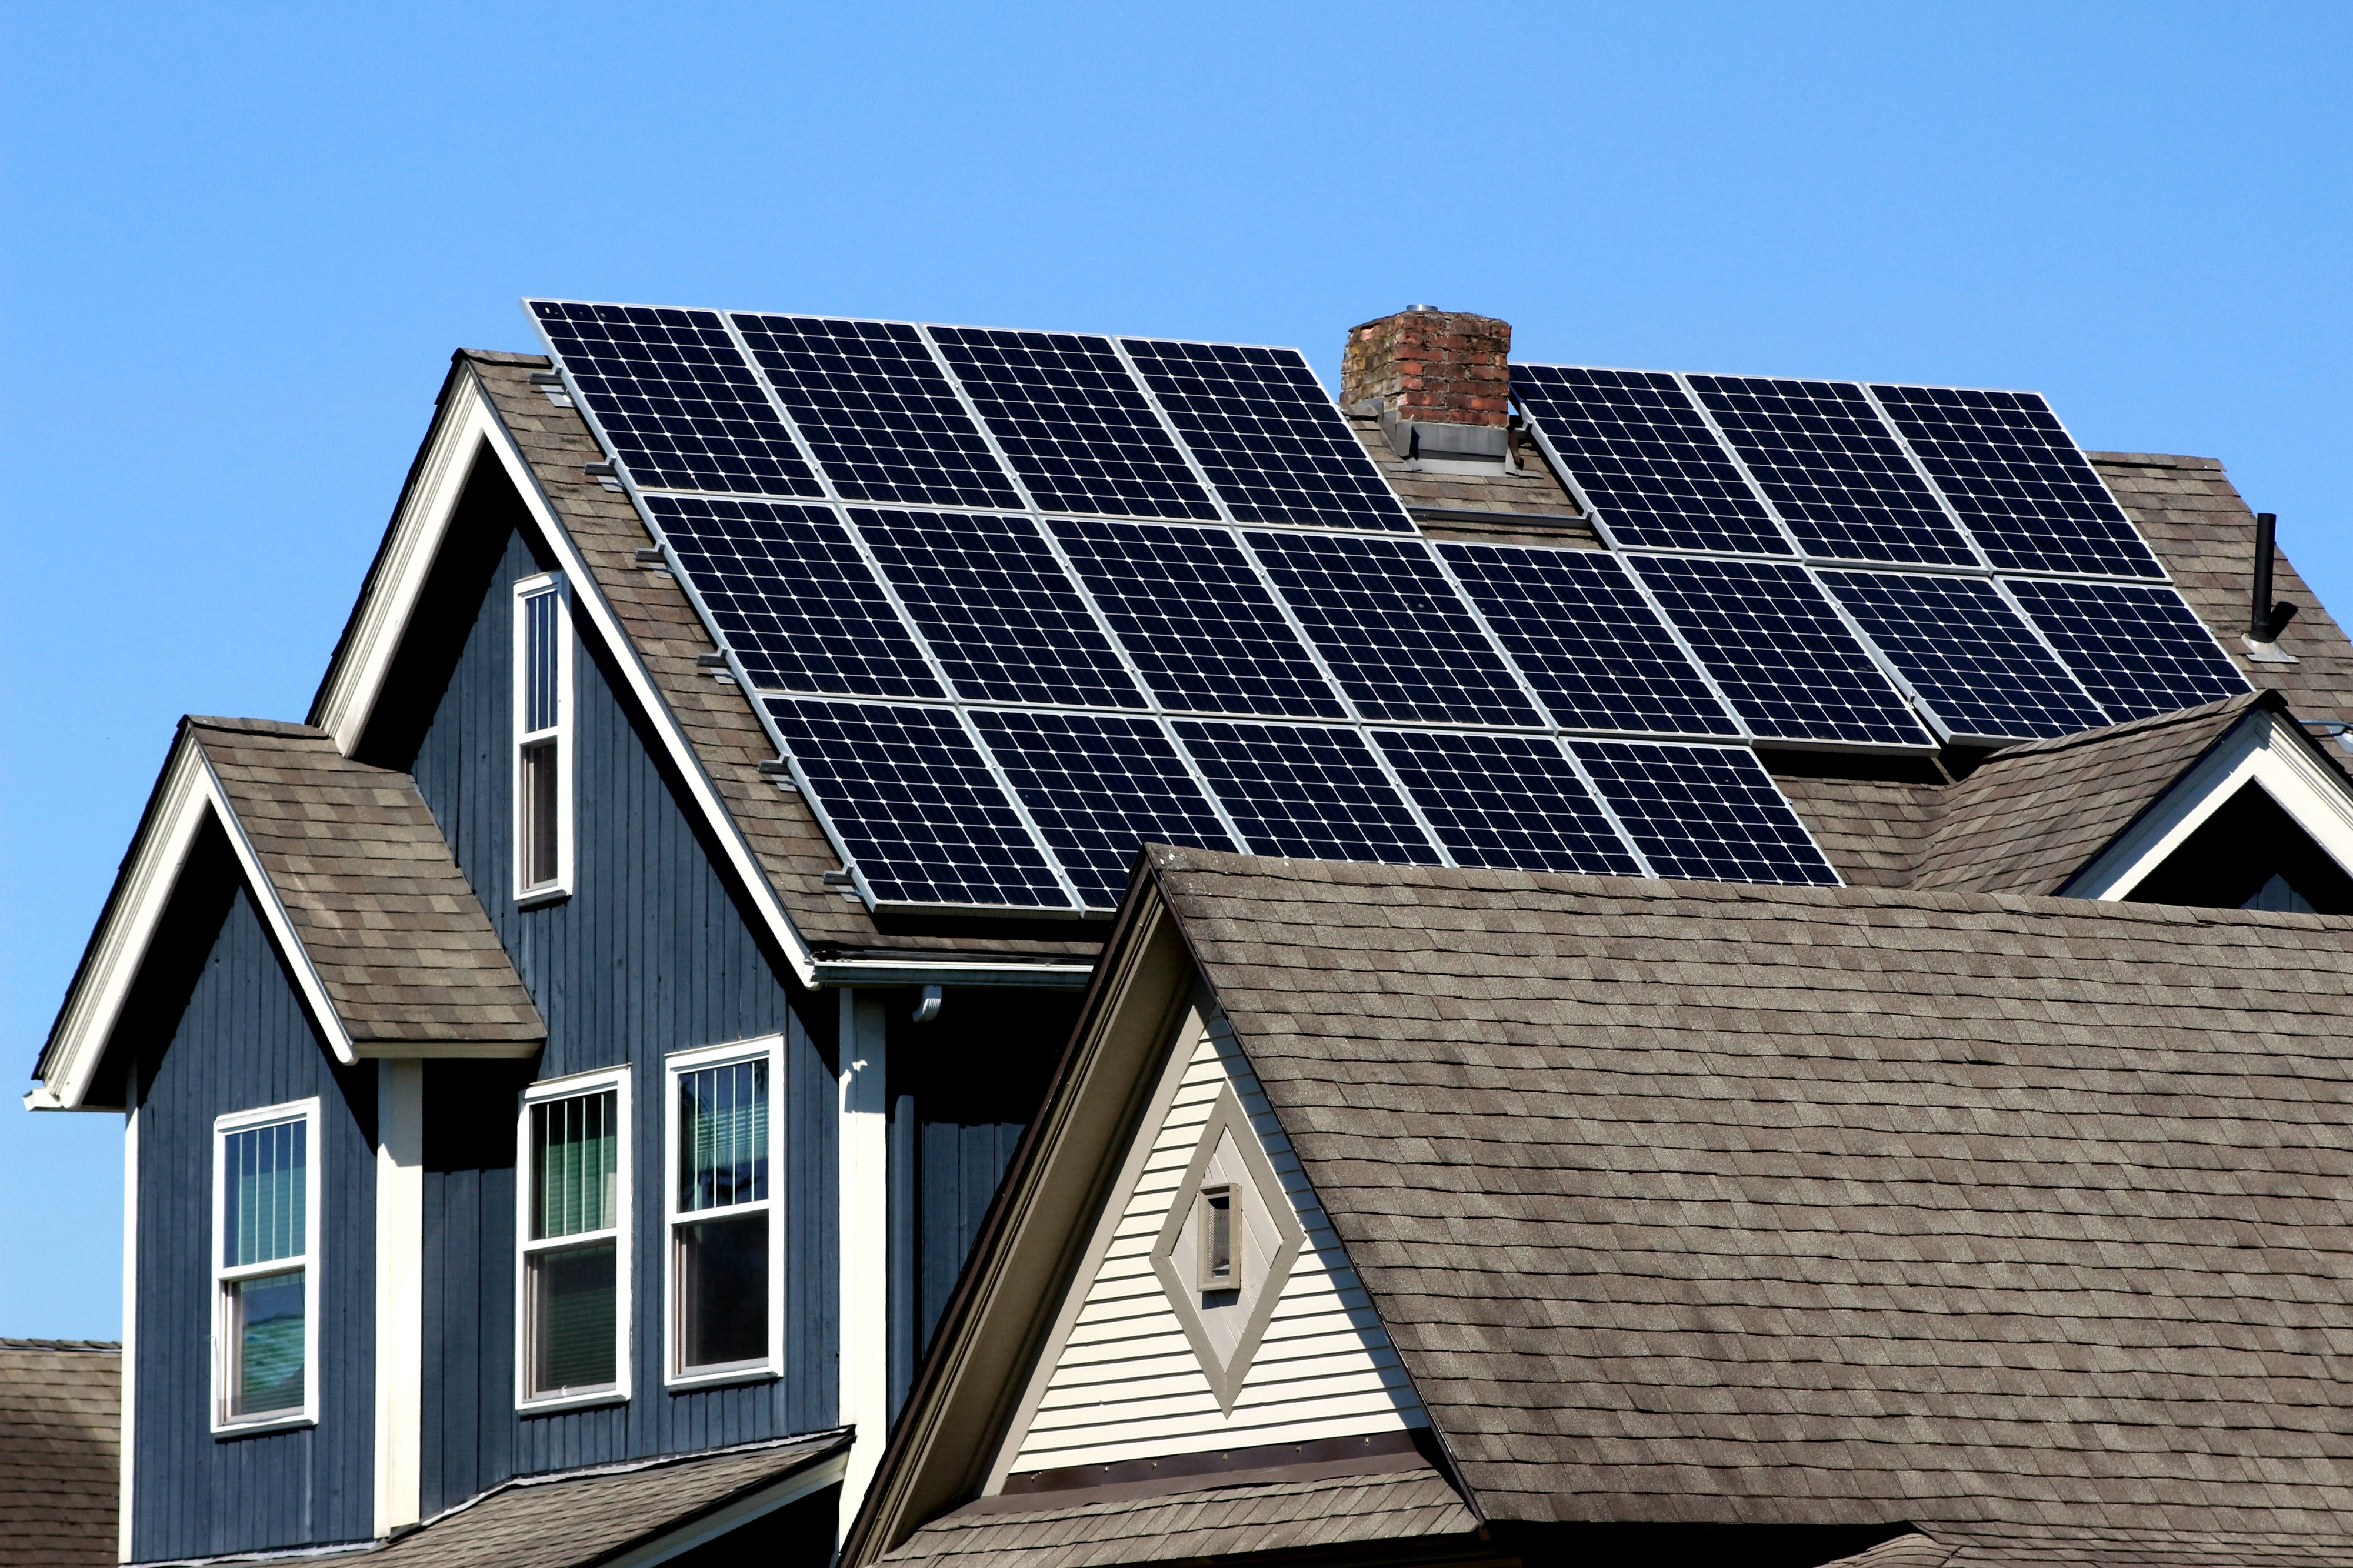 California Mandates Solar Panels With A Battery Option